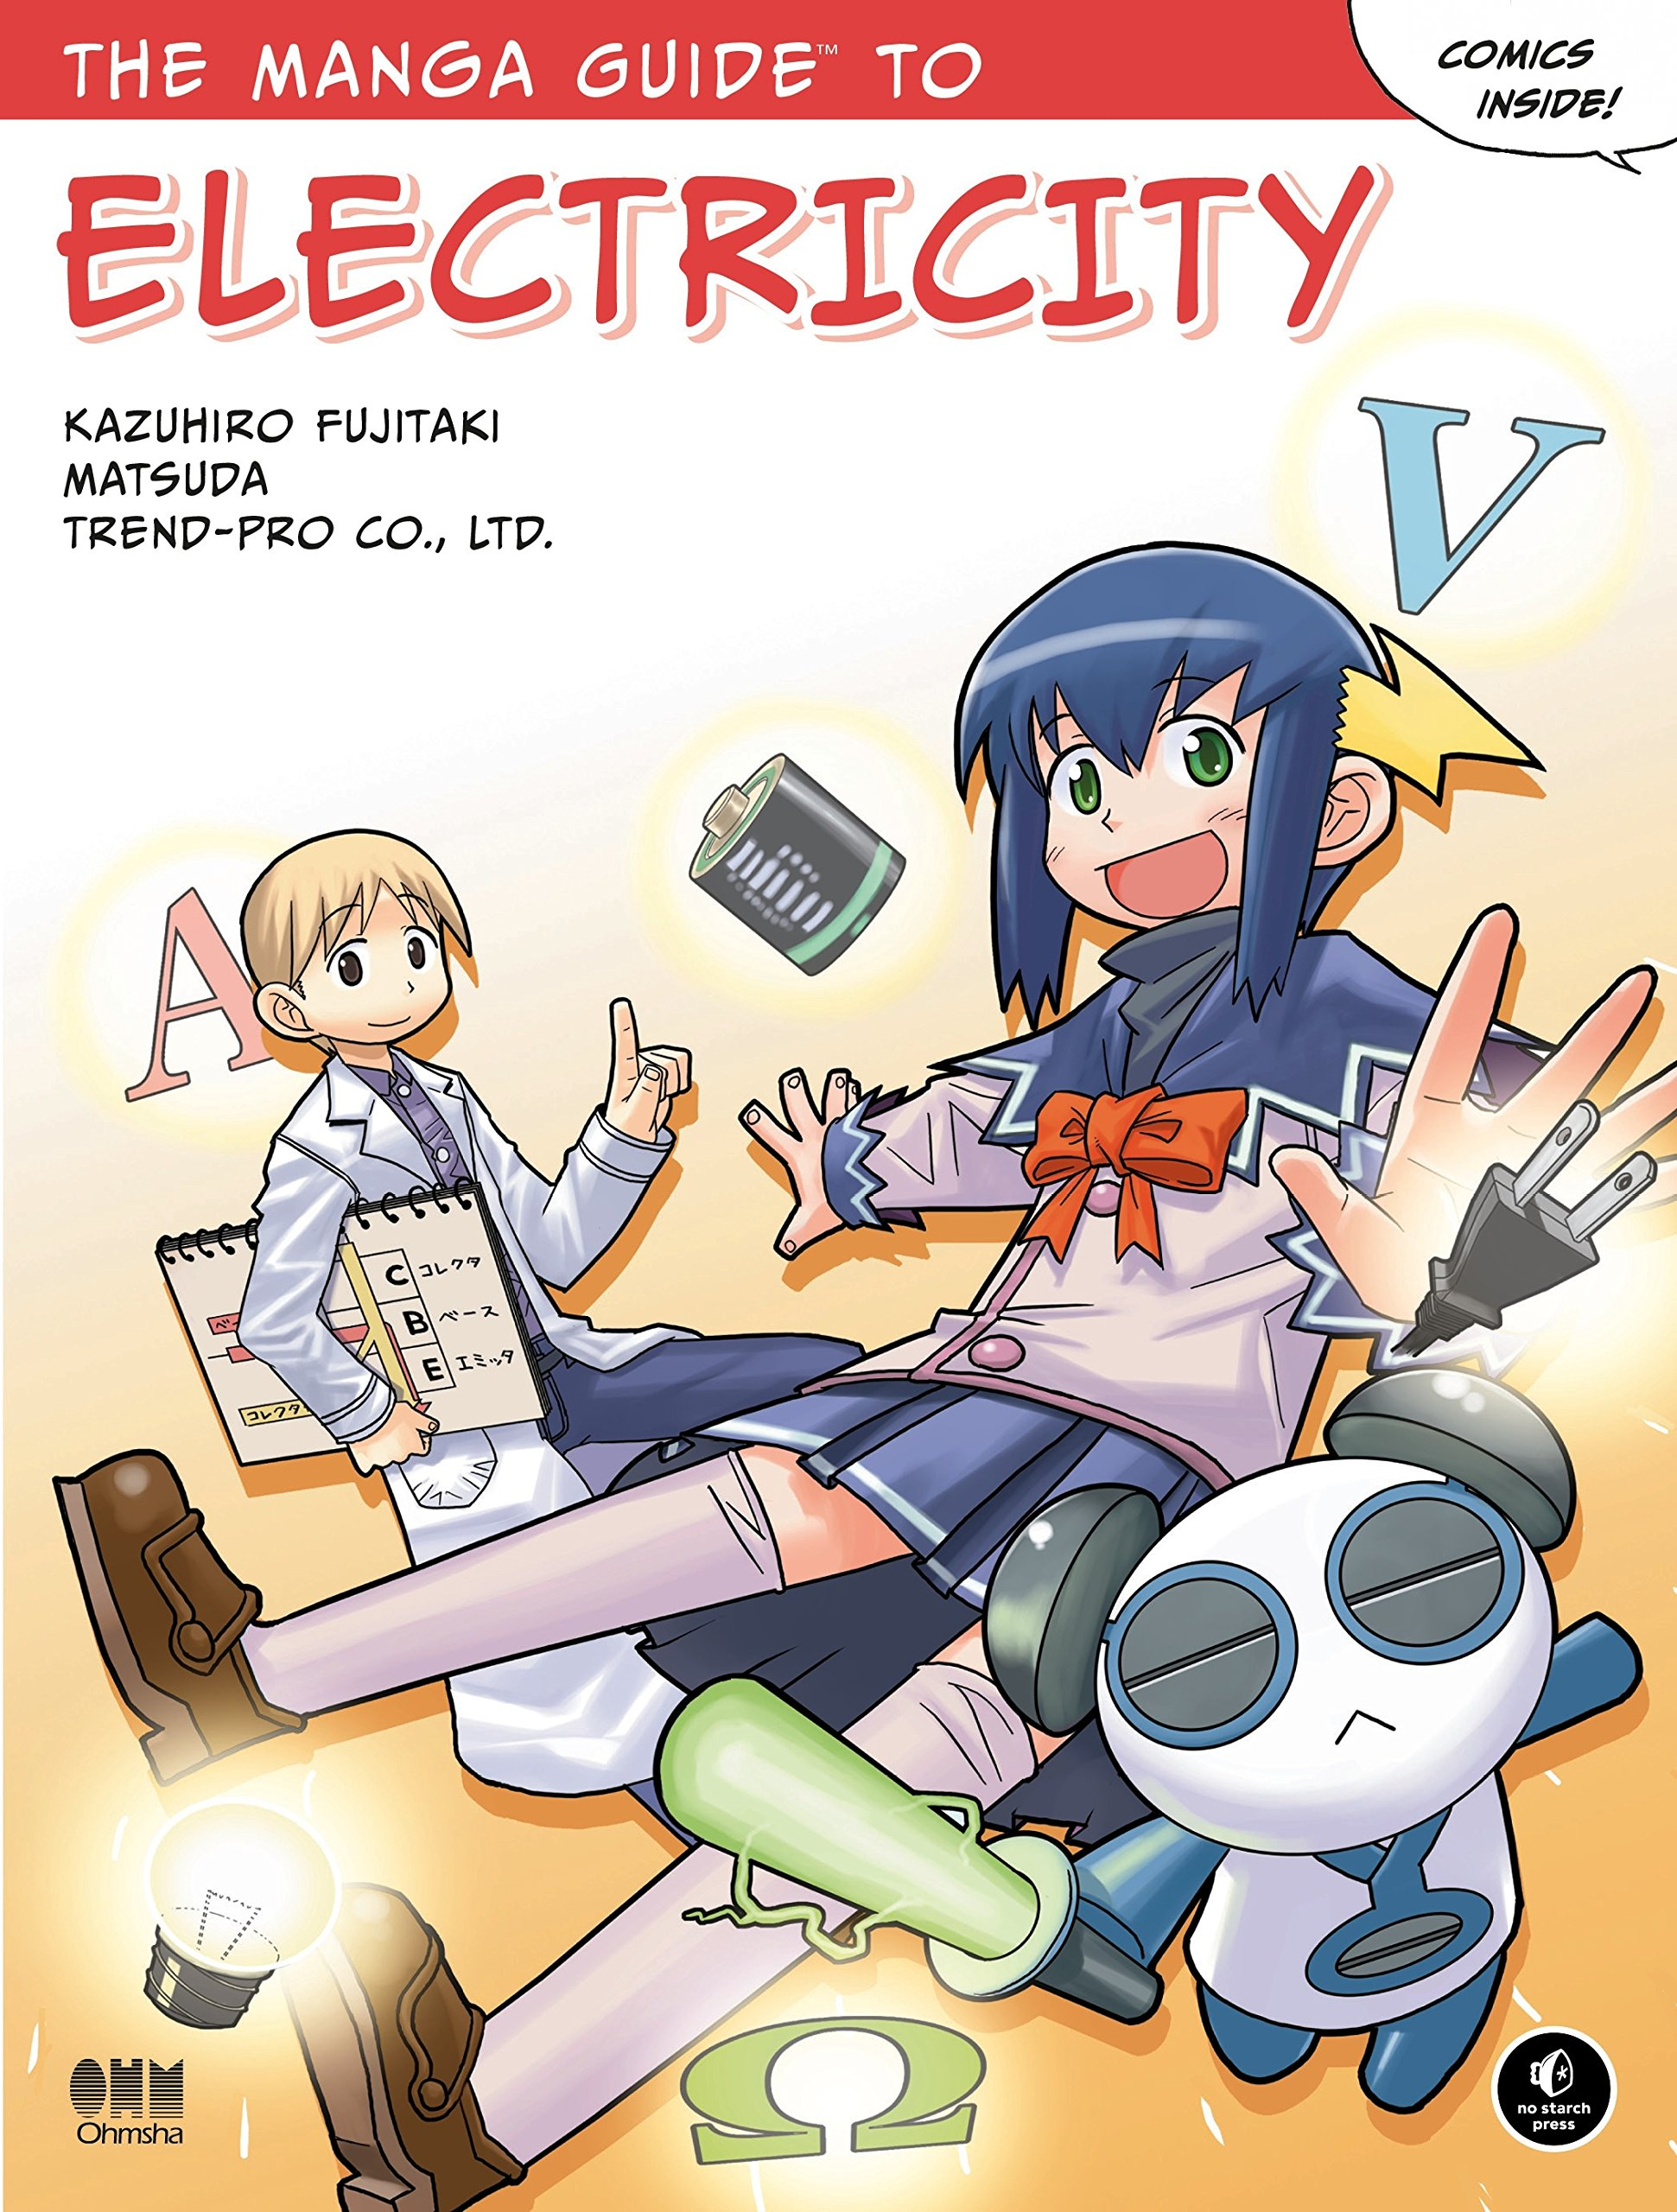 The Manga Guide to Electricity by No Starch Press (Image #2)